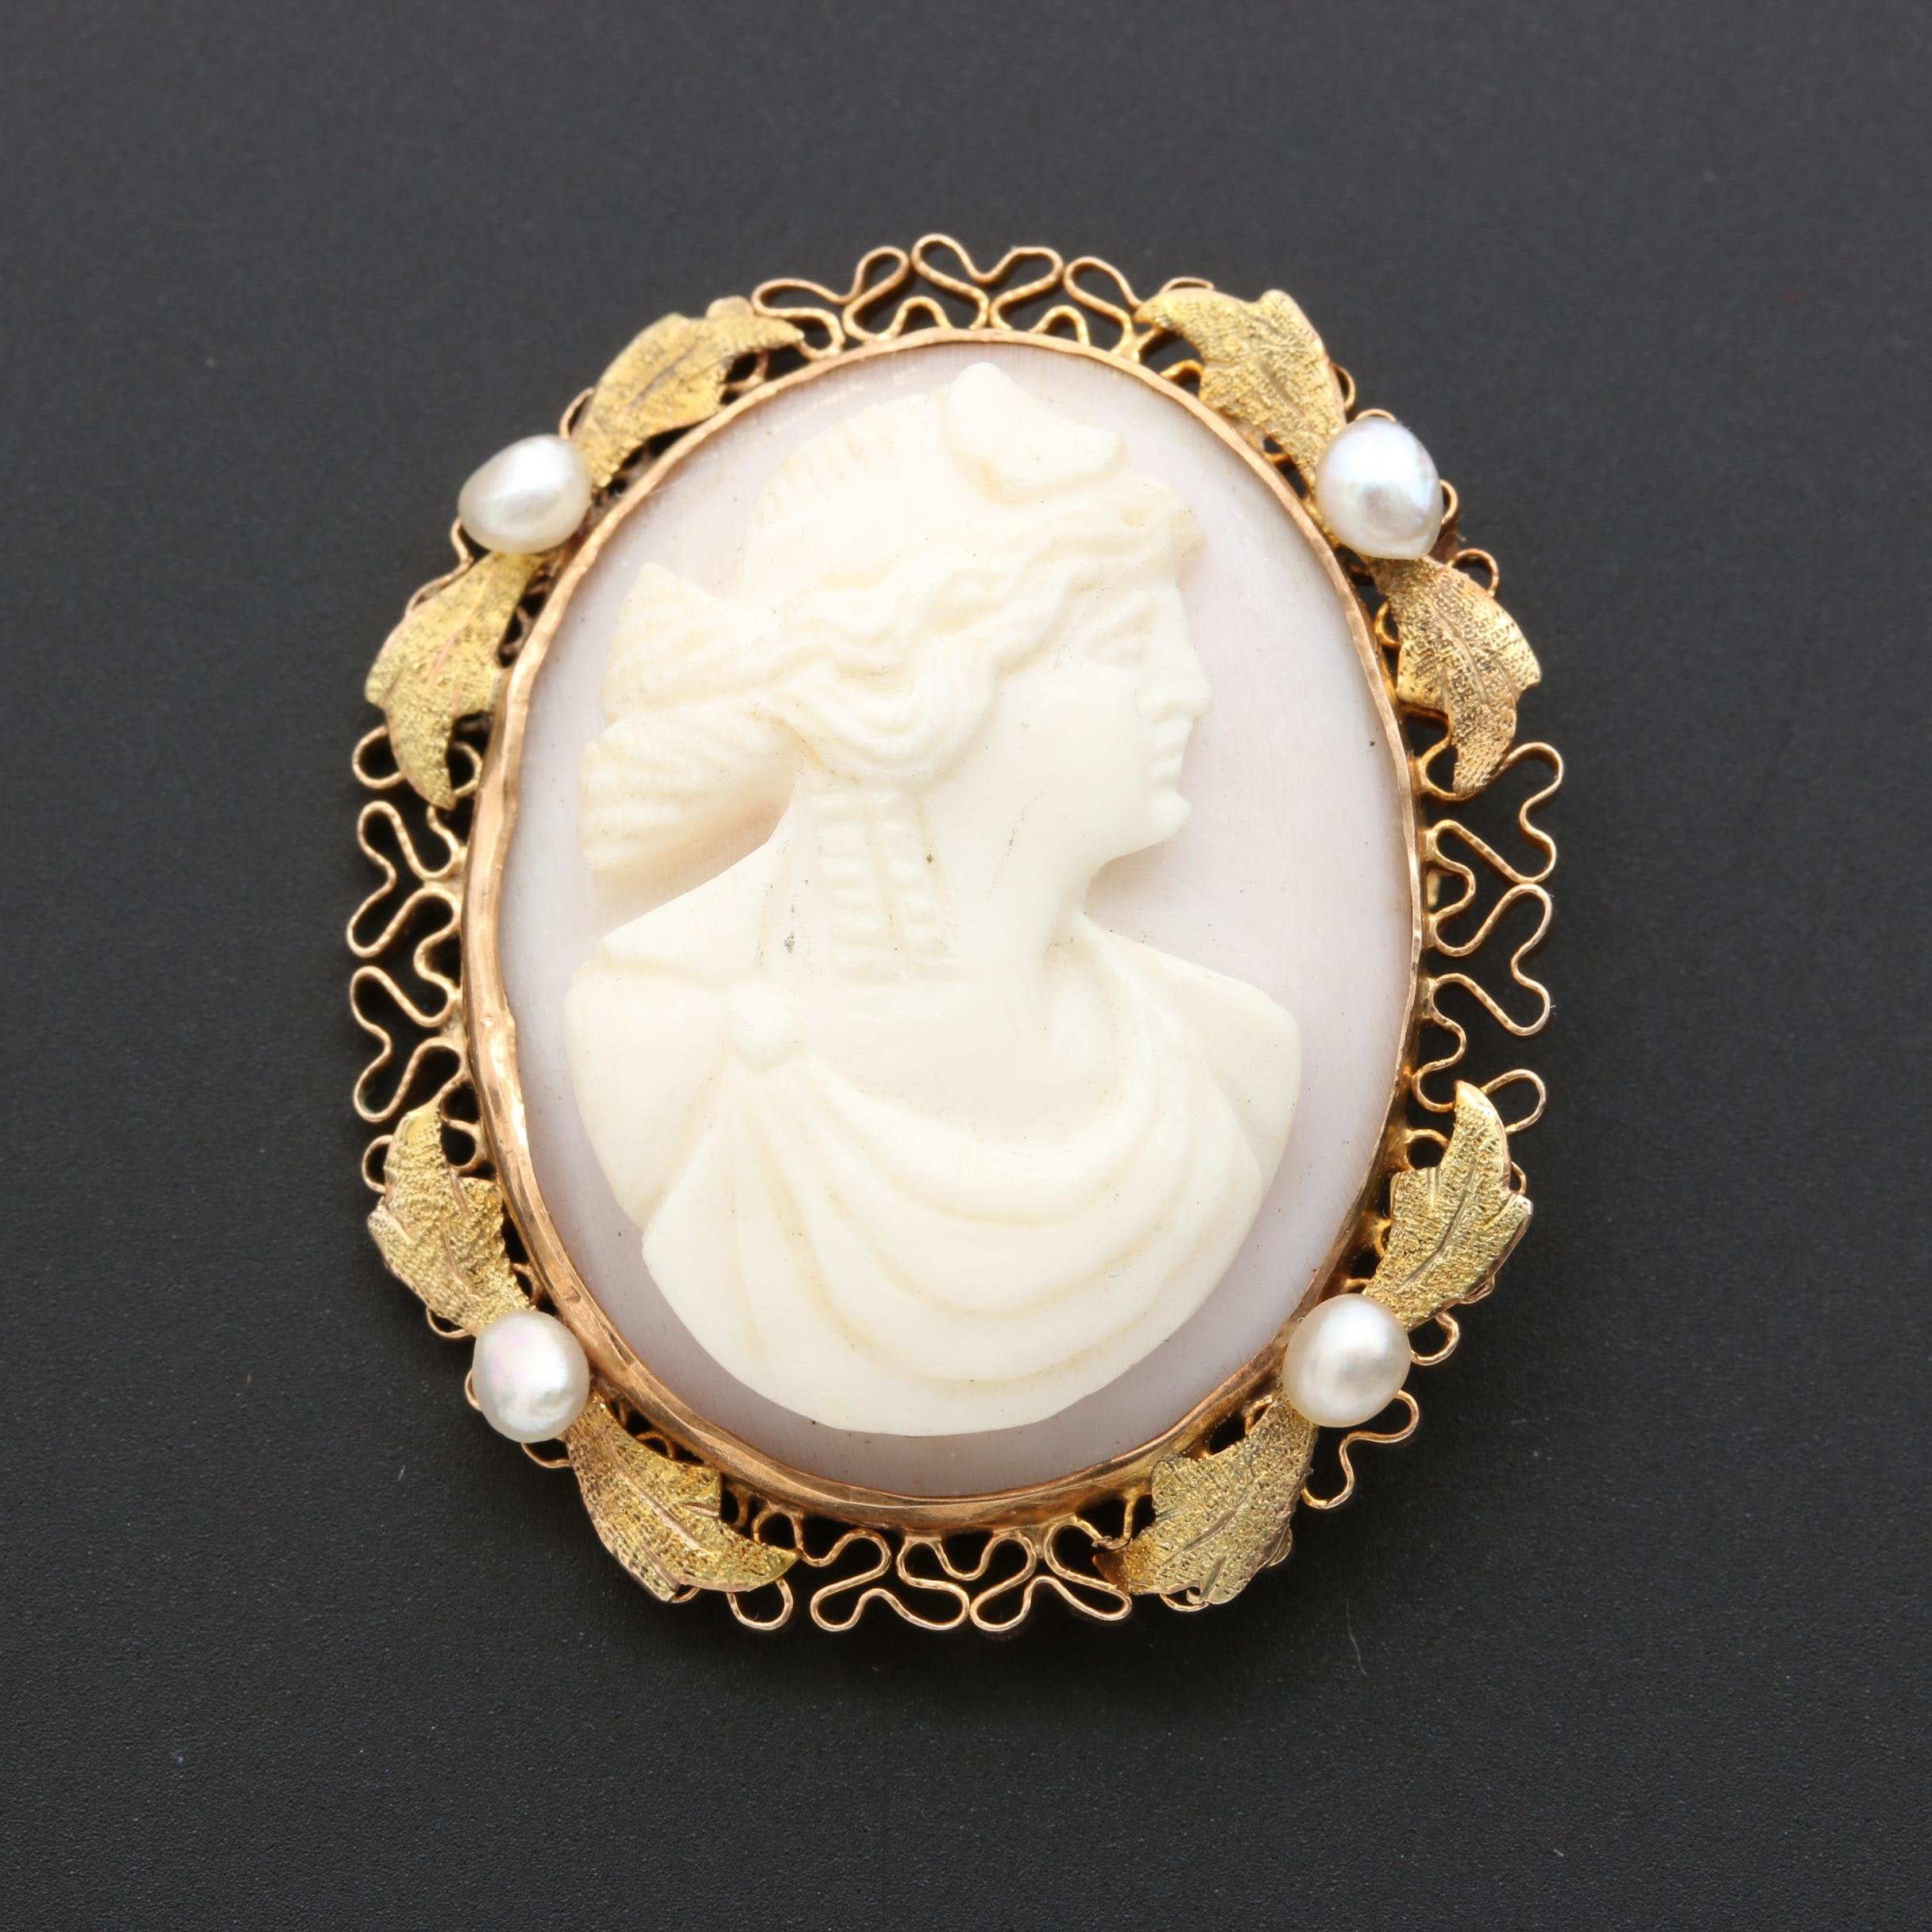 Victorian 10K Yellow Gold Pearl and Shell Cameo Brooch